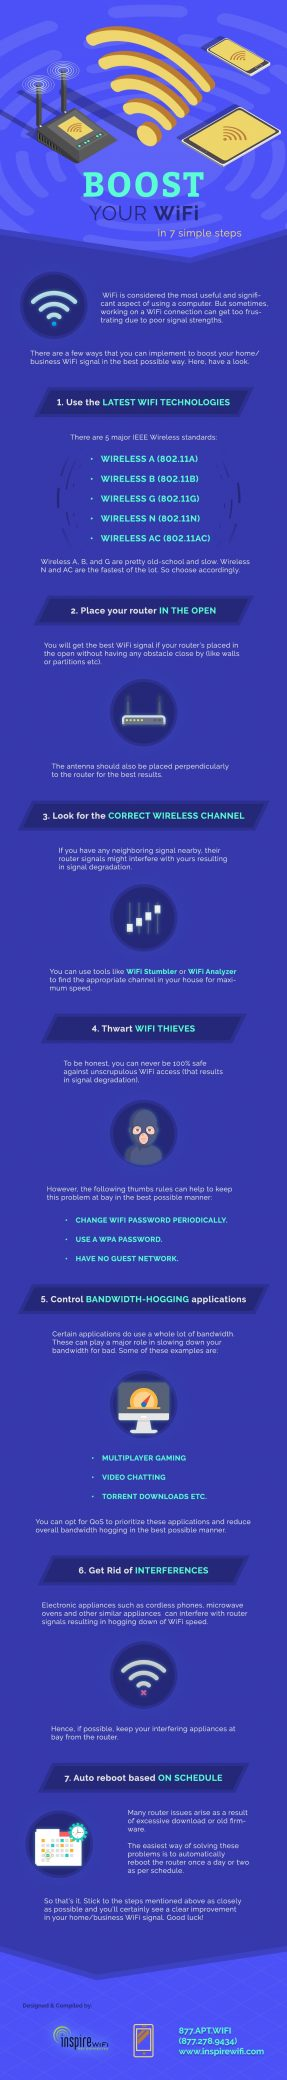 Why Does Your WiFi Speed Stink? [Infographic]